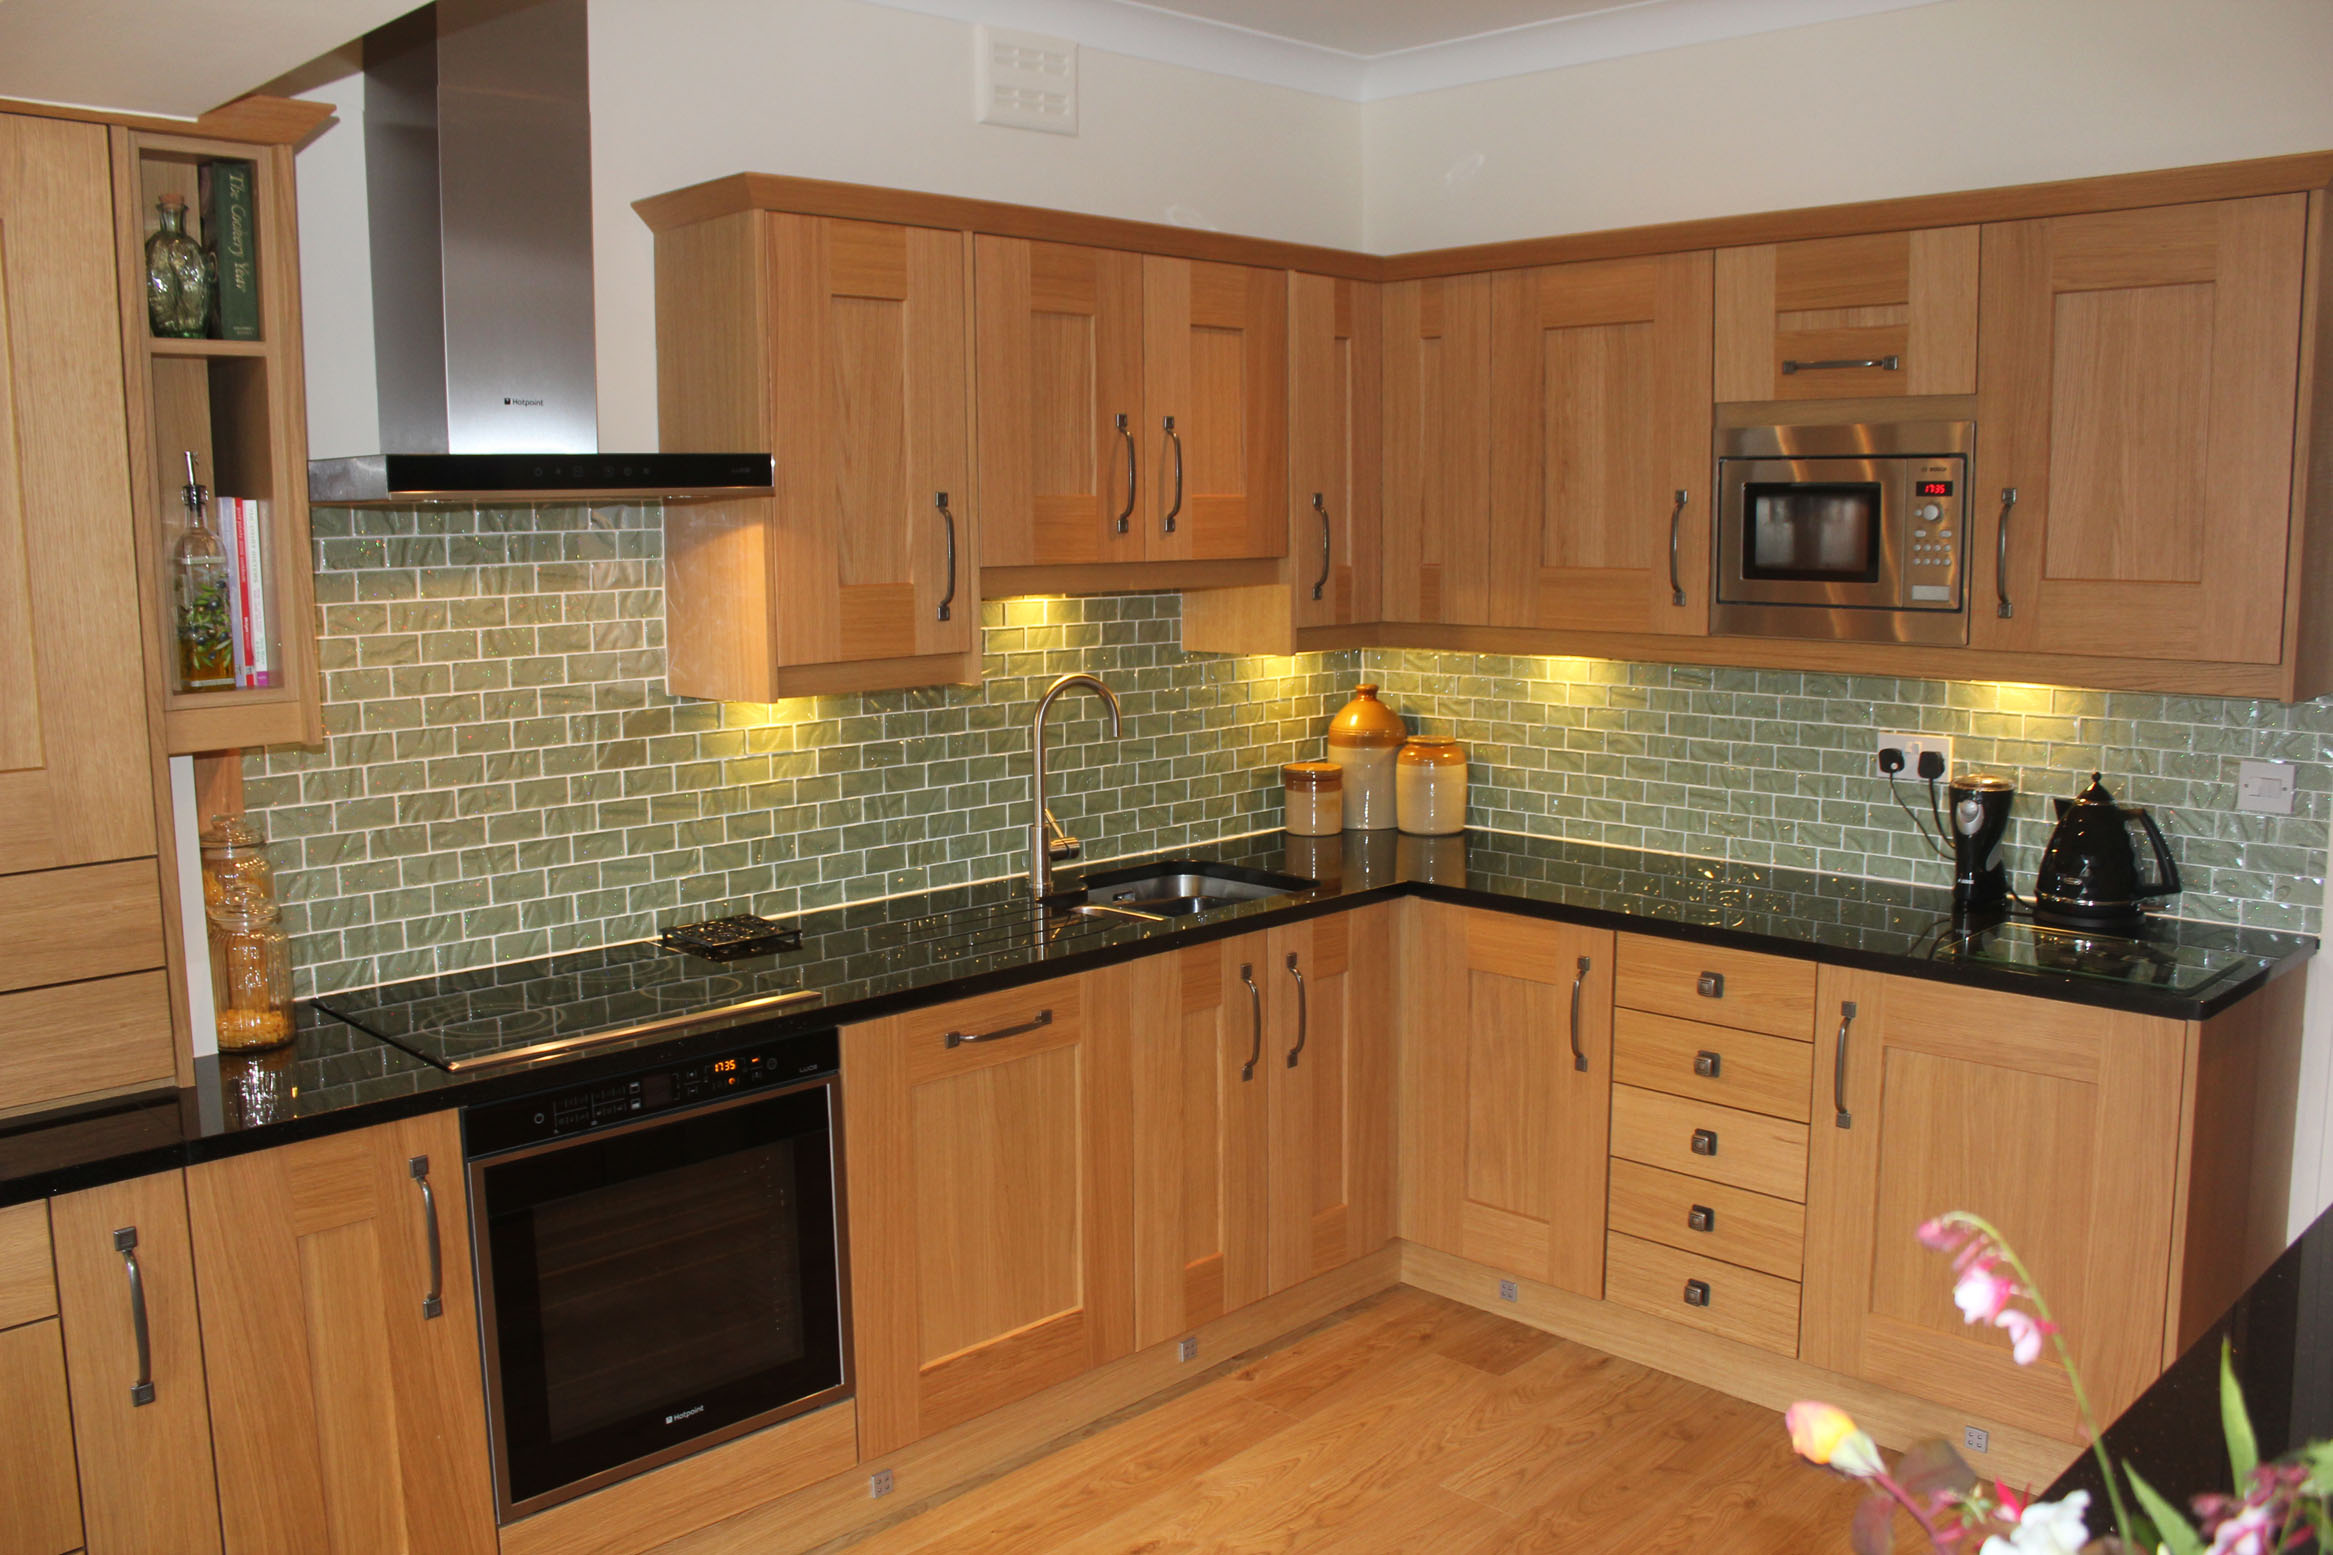 Kitchen Design And Fitting Kitchen Design Amp Installation In Leicester Kitchen Design And